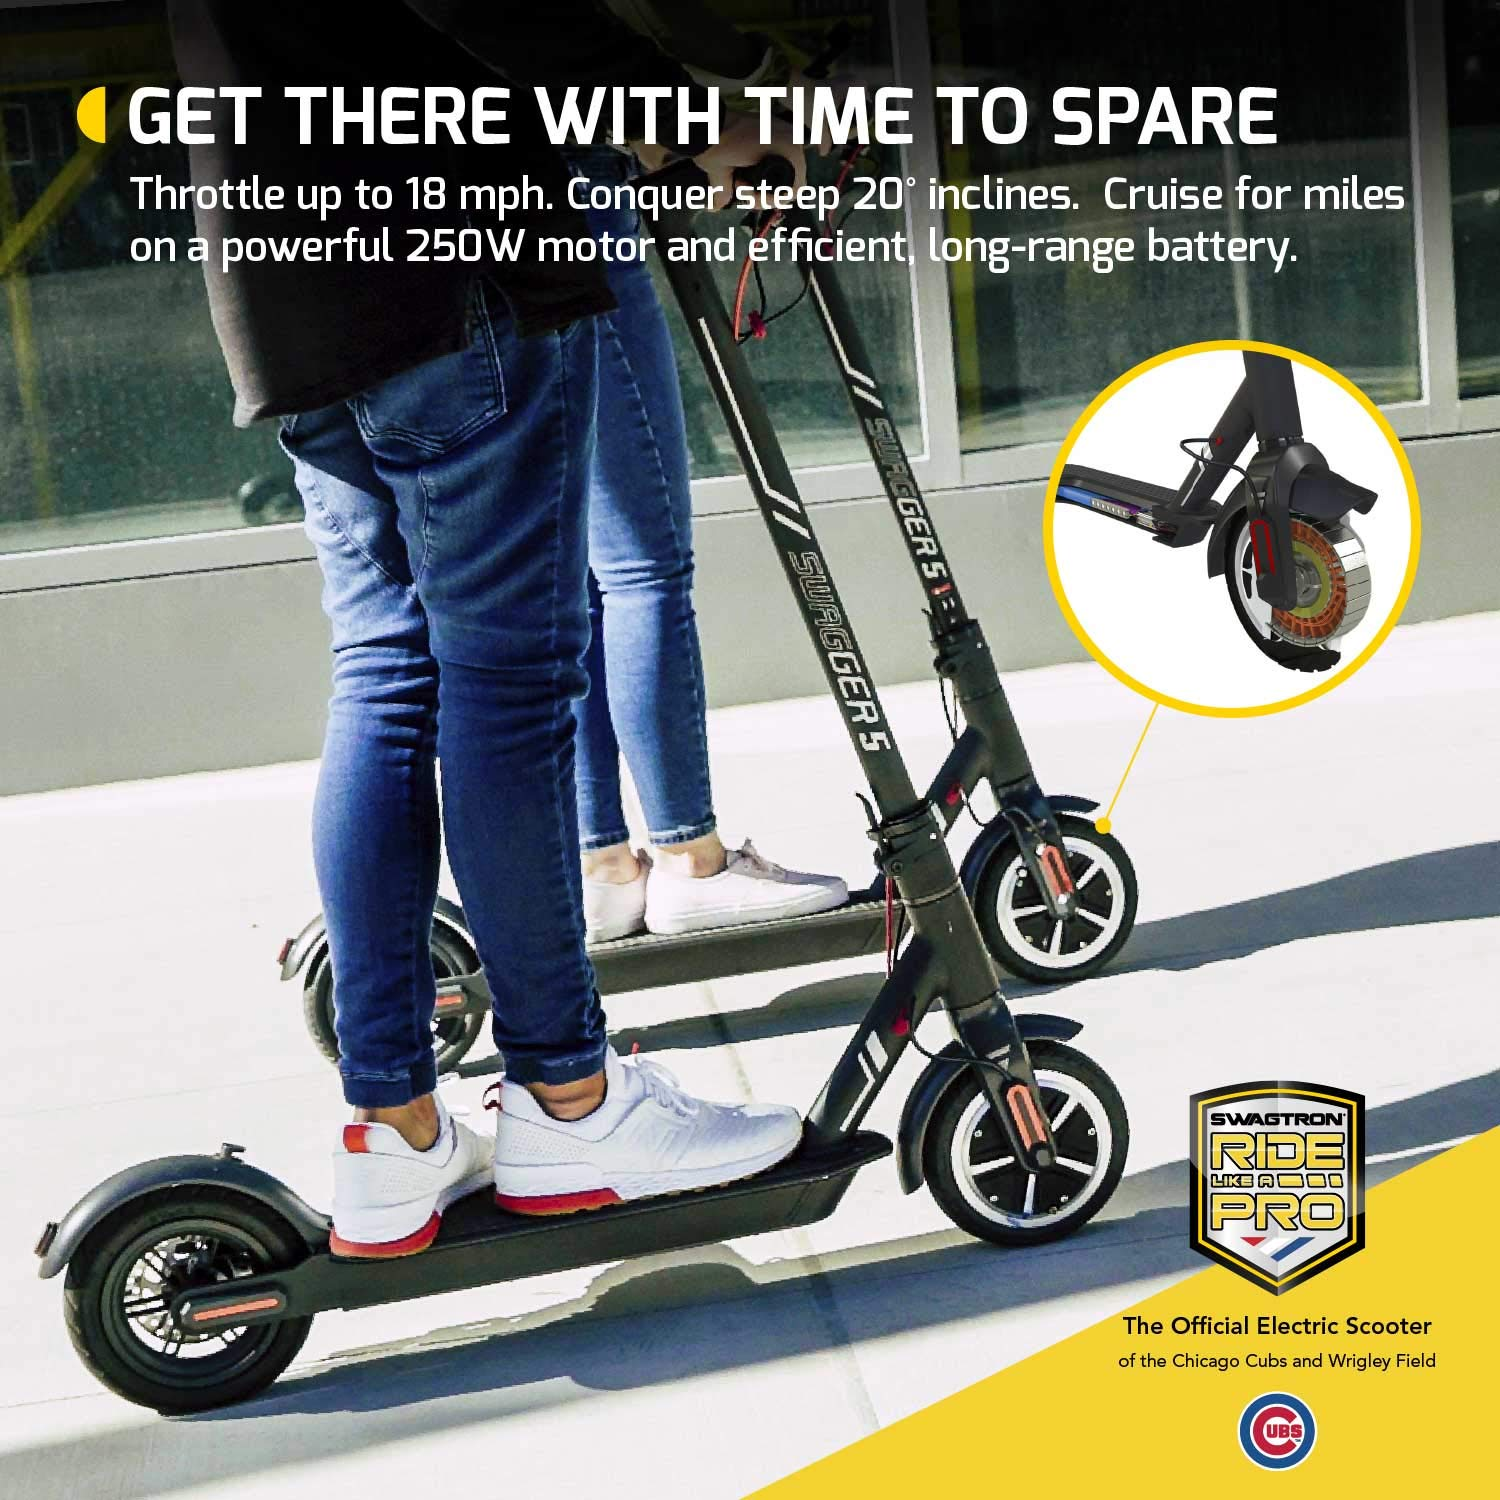 Swagtron High Speed Electric Scooter with 8.5'' Cushioned Tires, Cruise Control and 1-Step Portable Folding - Swagger 5 by Swagtron (Image #4)